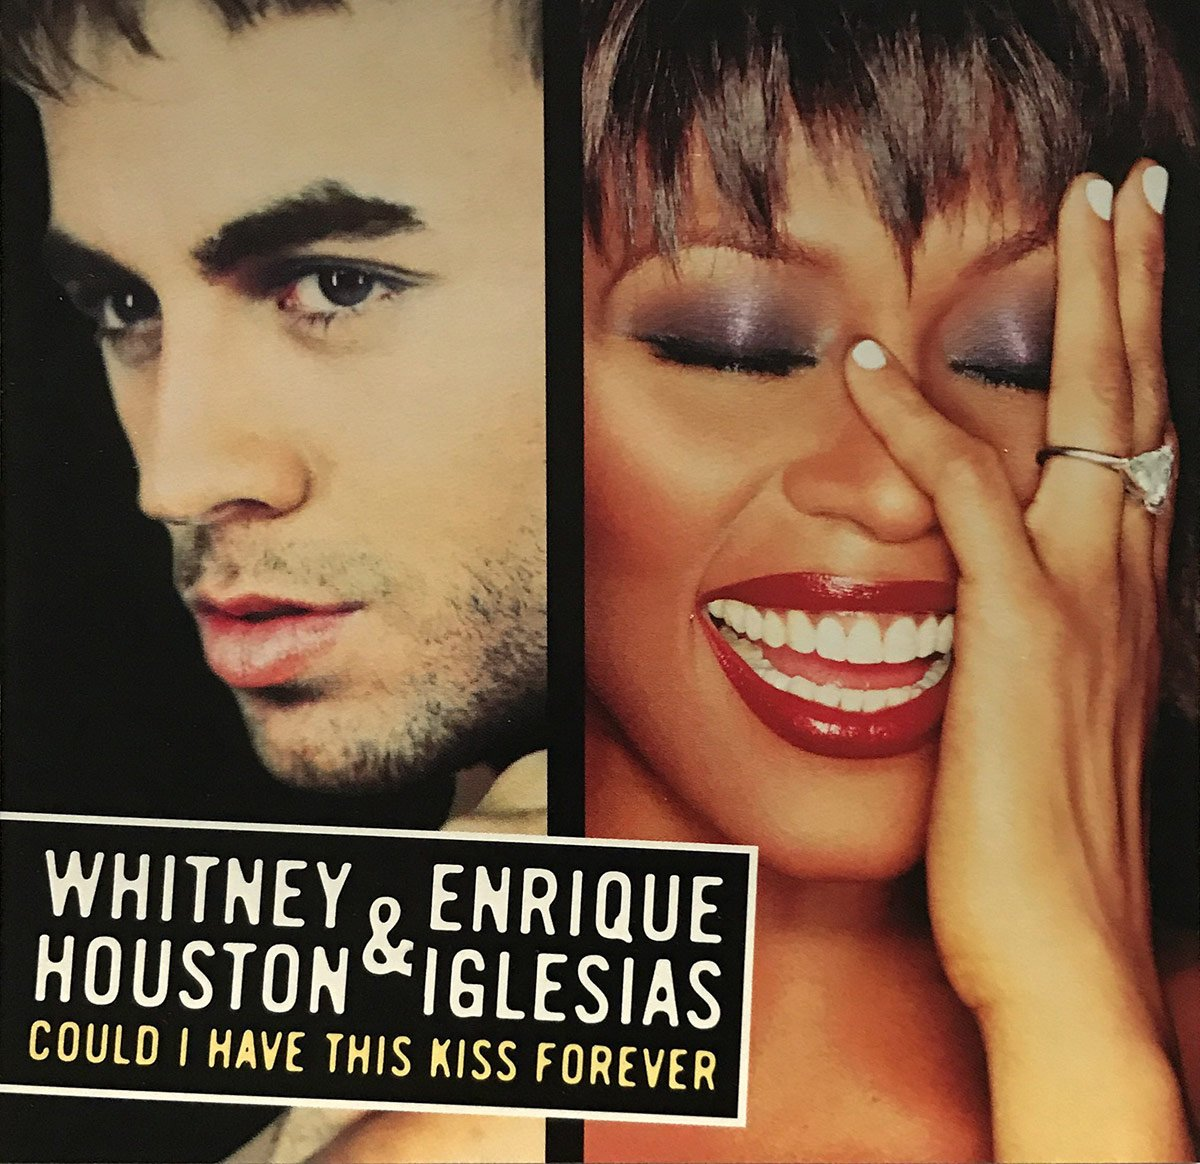 Whitney Houston and Enrique Iglesias - Could I Have This Kiss Forever single front cover